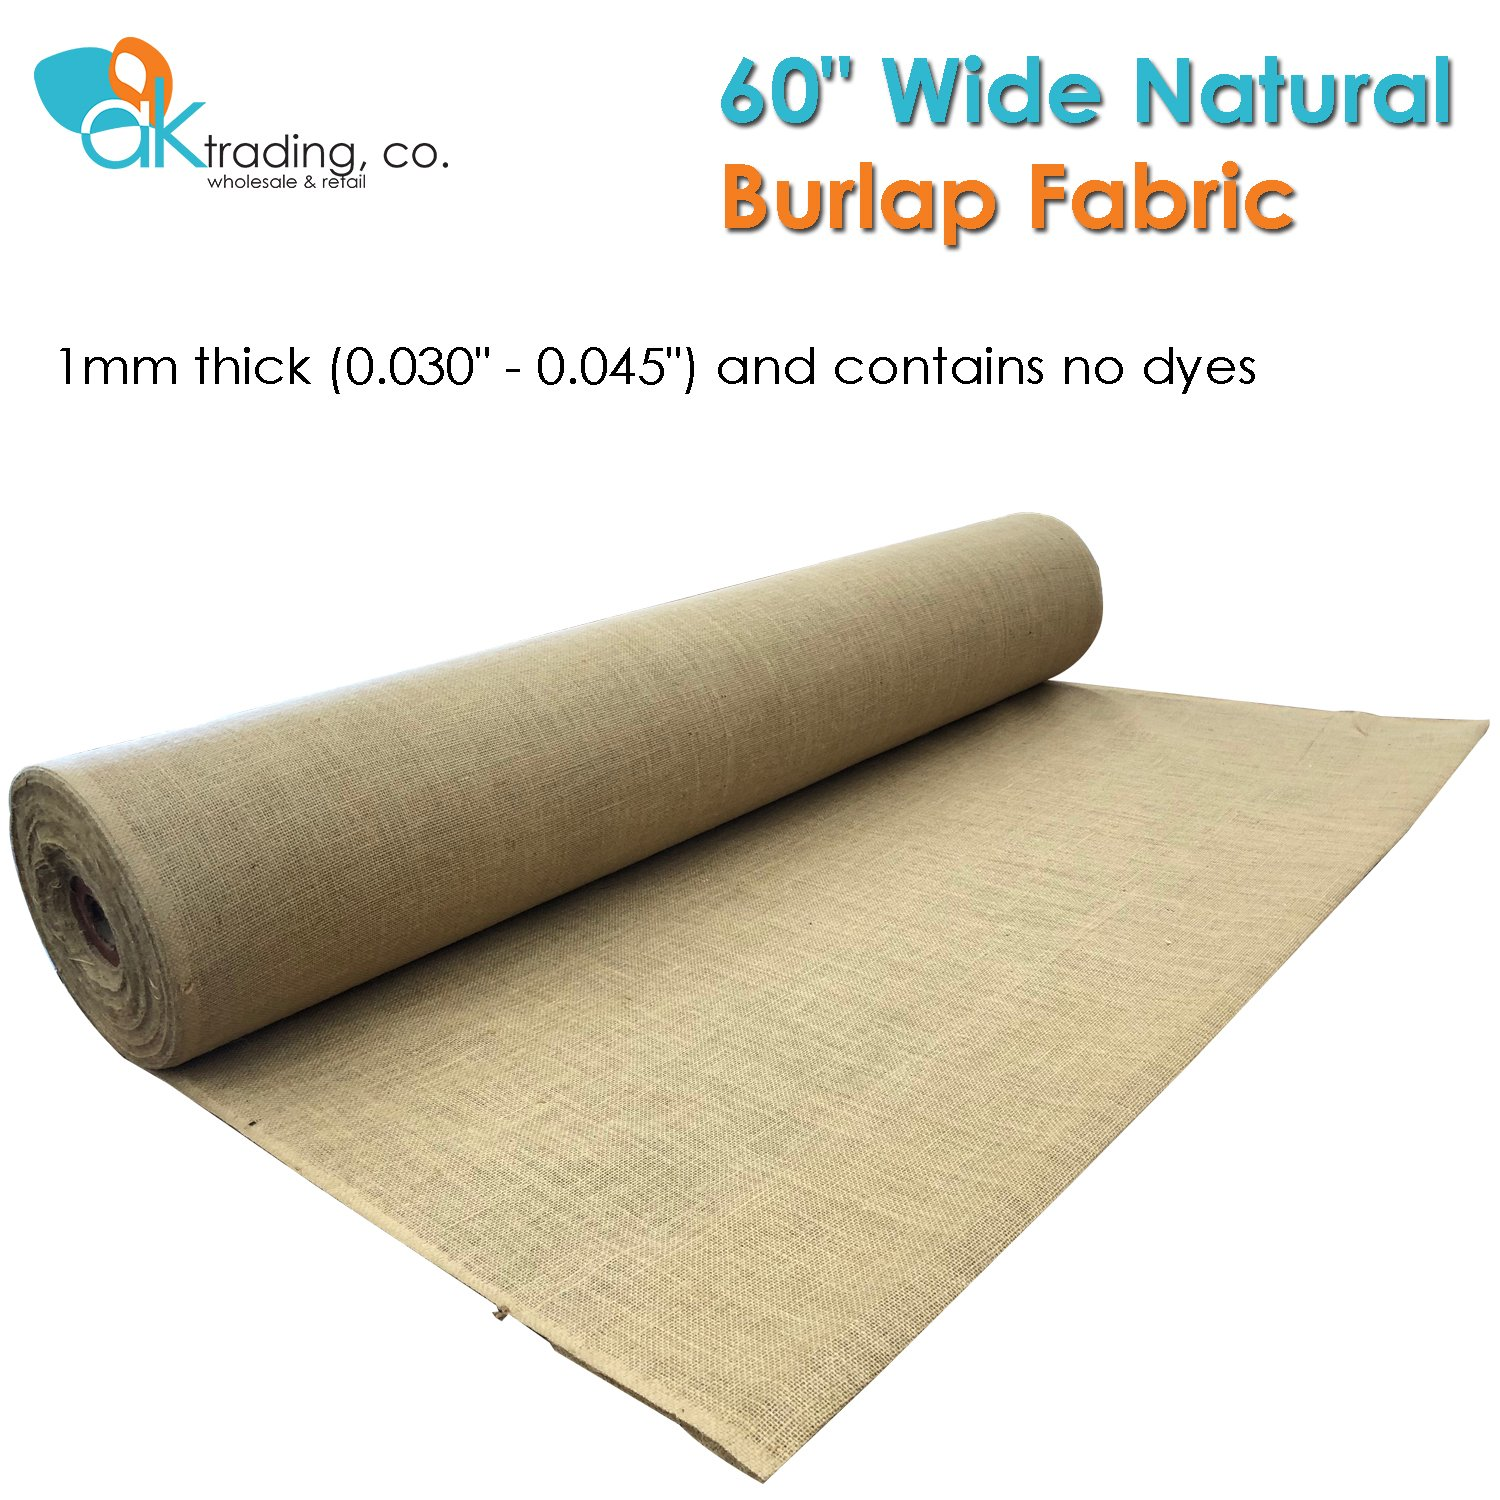 AK-Trading 60'' Wide Hessian Natural Jute Decoration Burlap Fabric (60'' x 20 Yards), for Arts, Crafts, Interior Design Projects